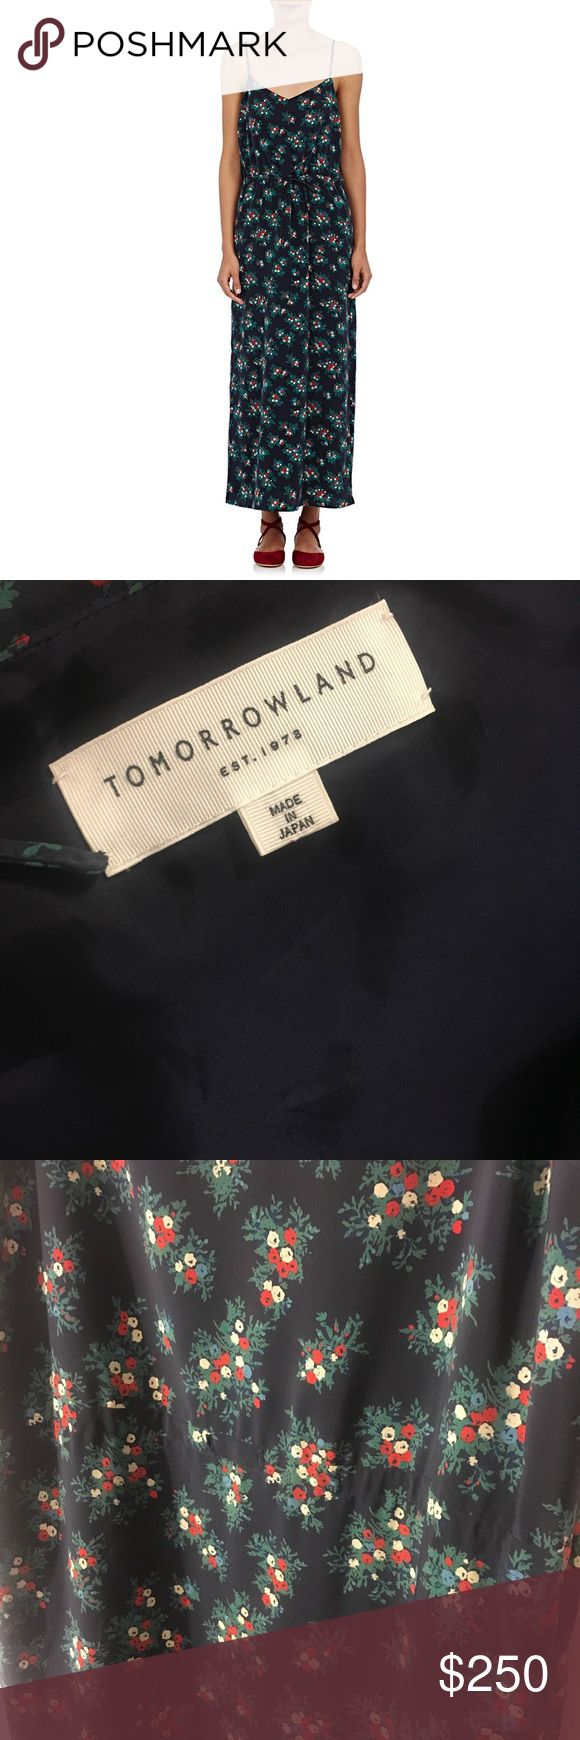 """TOMORROWLAND 🇯🇵 Floral 💐 Slip Silk Maxi Dress Gorgeous Tomorrowland Japan Floral print Maxi Dress for under half retail price! Guaranteed authentic! Lined top. Adjustable straps. Condition: clean! No waist tie for better shape. Typical wear and minor fading. Sold as is. No stains, snags, holes or odor. Overall great preowned condition! Shop with confidence! Ships fast  Approx. Measurements: Taken Flat  Chest: 35"""" Shoulders: 10.5"""" Arm Opening: 9.5"""" Hips: 40"""" Length: 54"""" TOMORROWLAND…"""